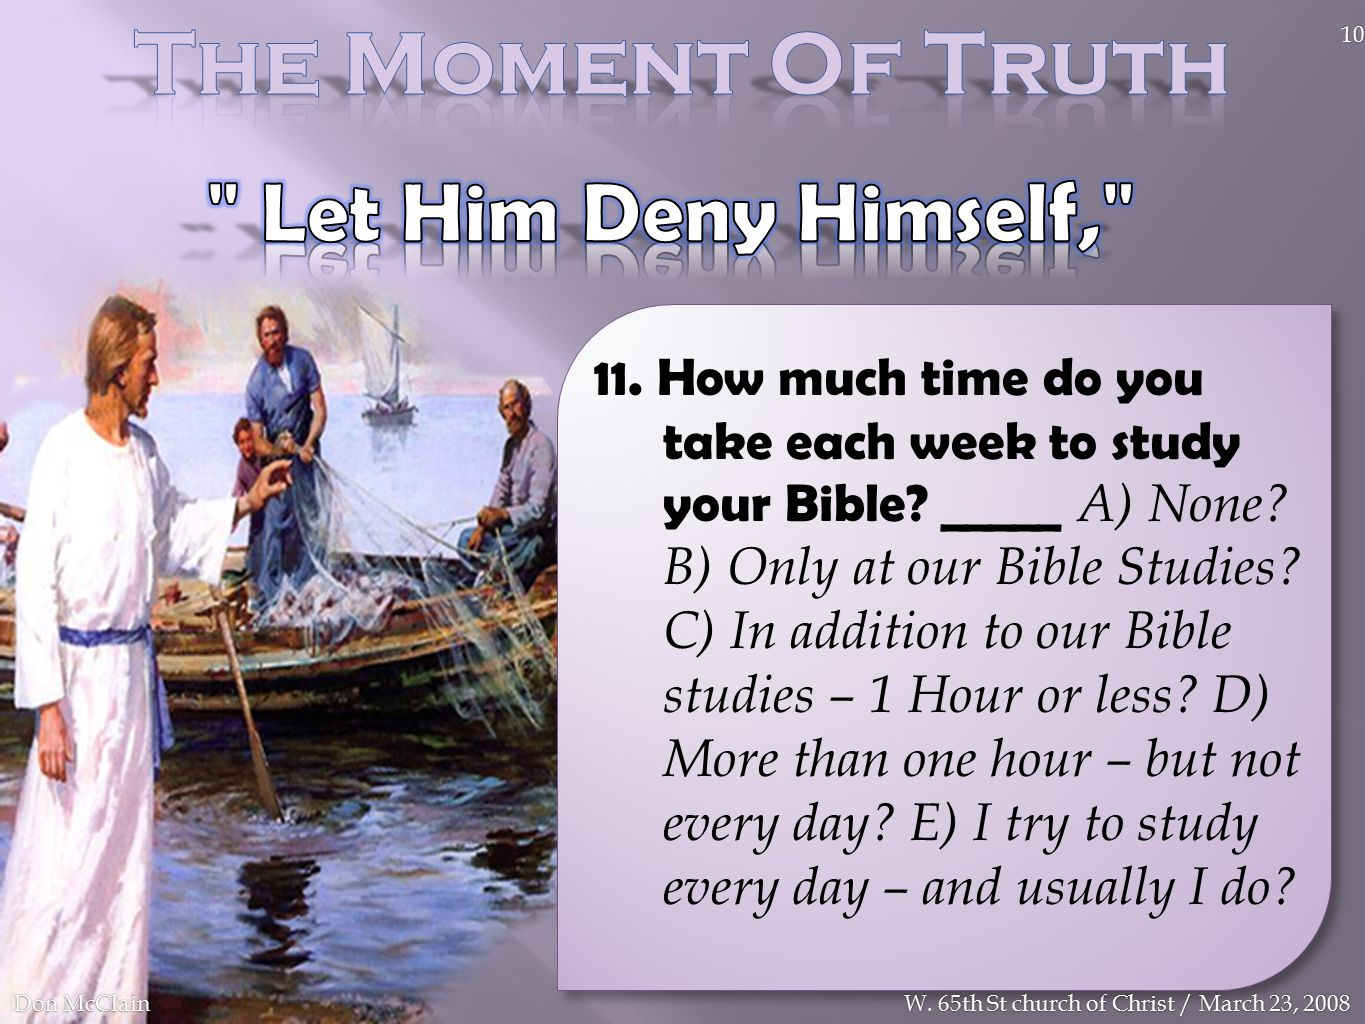 11. How much time do you take each week to study your Bible.